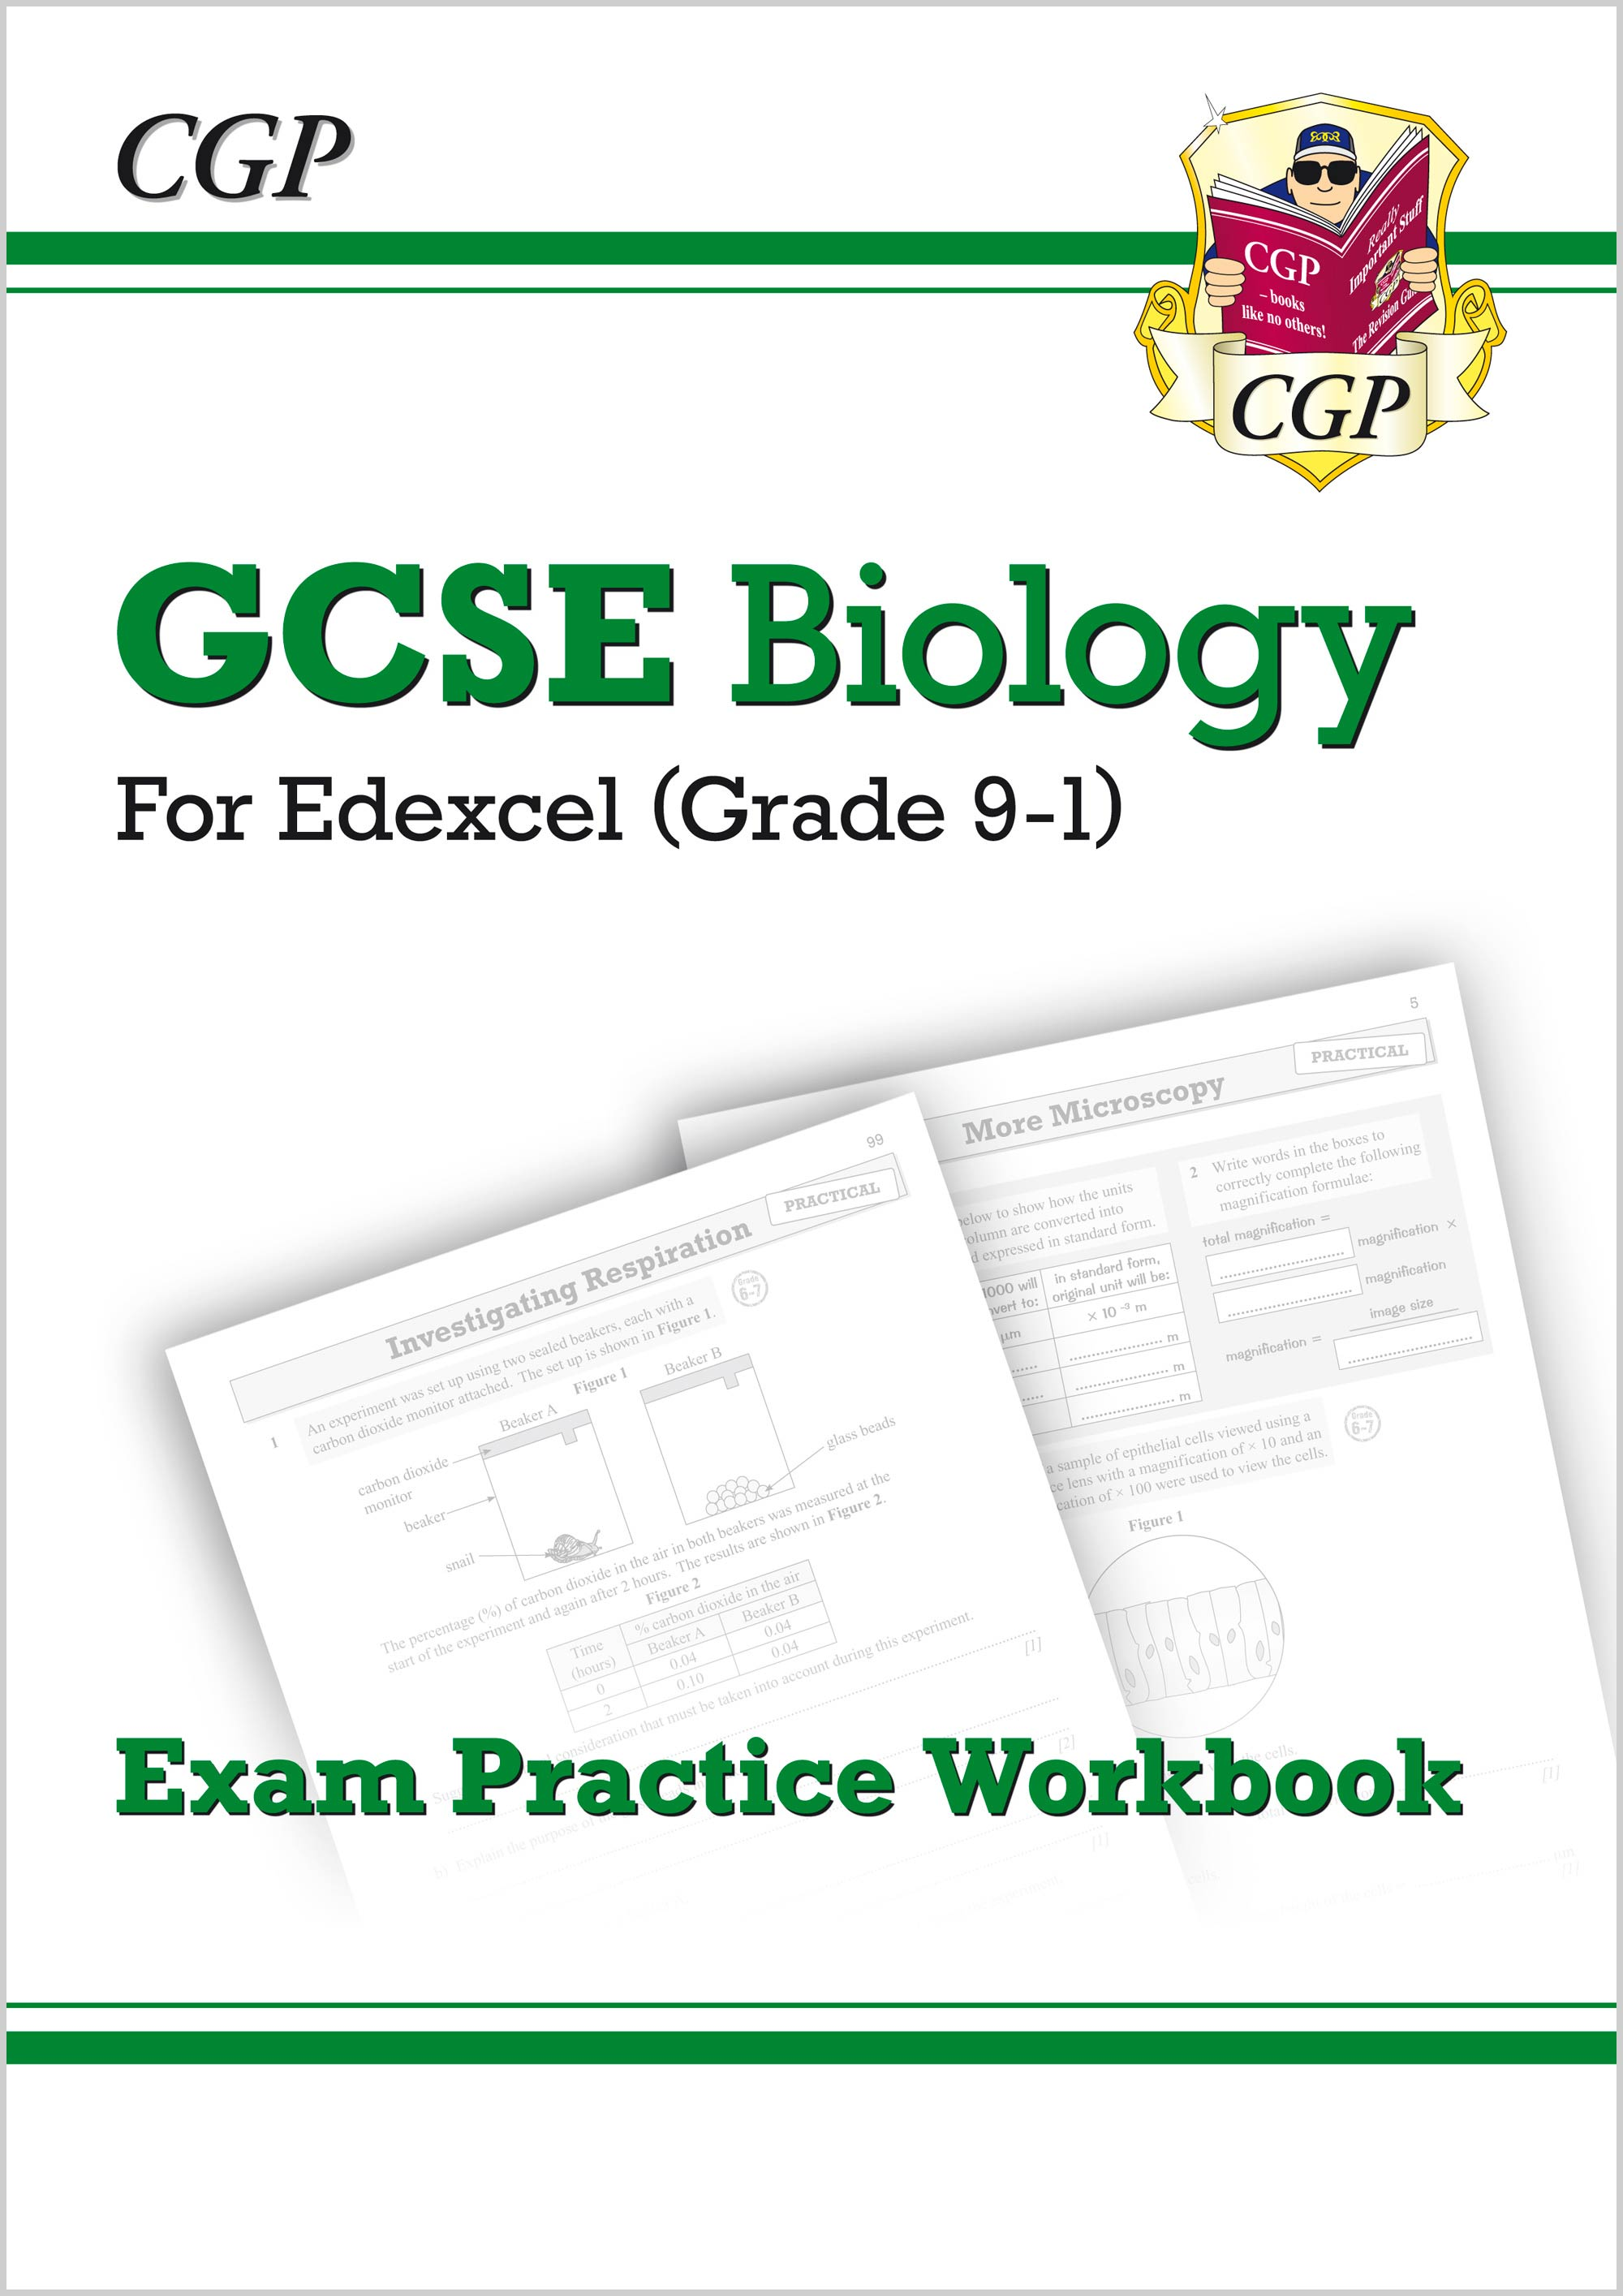 BEQ41 - New Grade 9-1 GCSE Biology: Edexcel Exam Practice Workbook